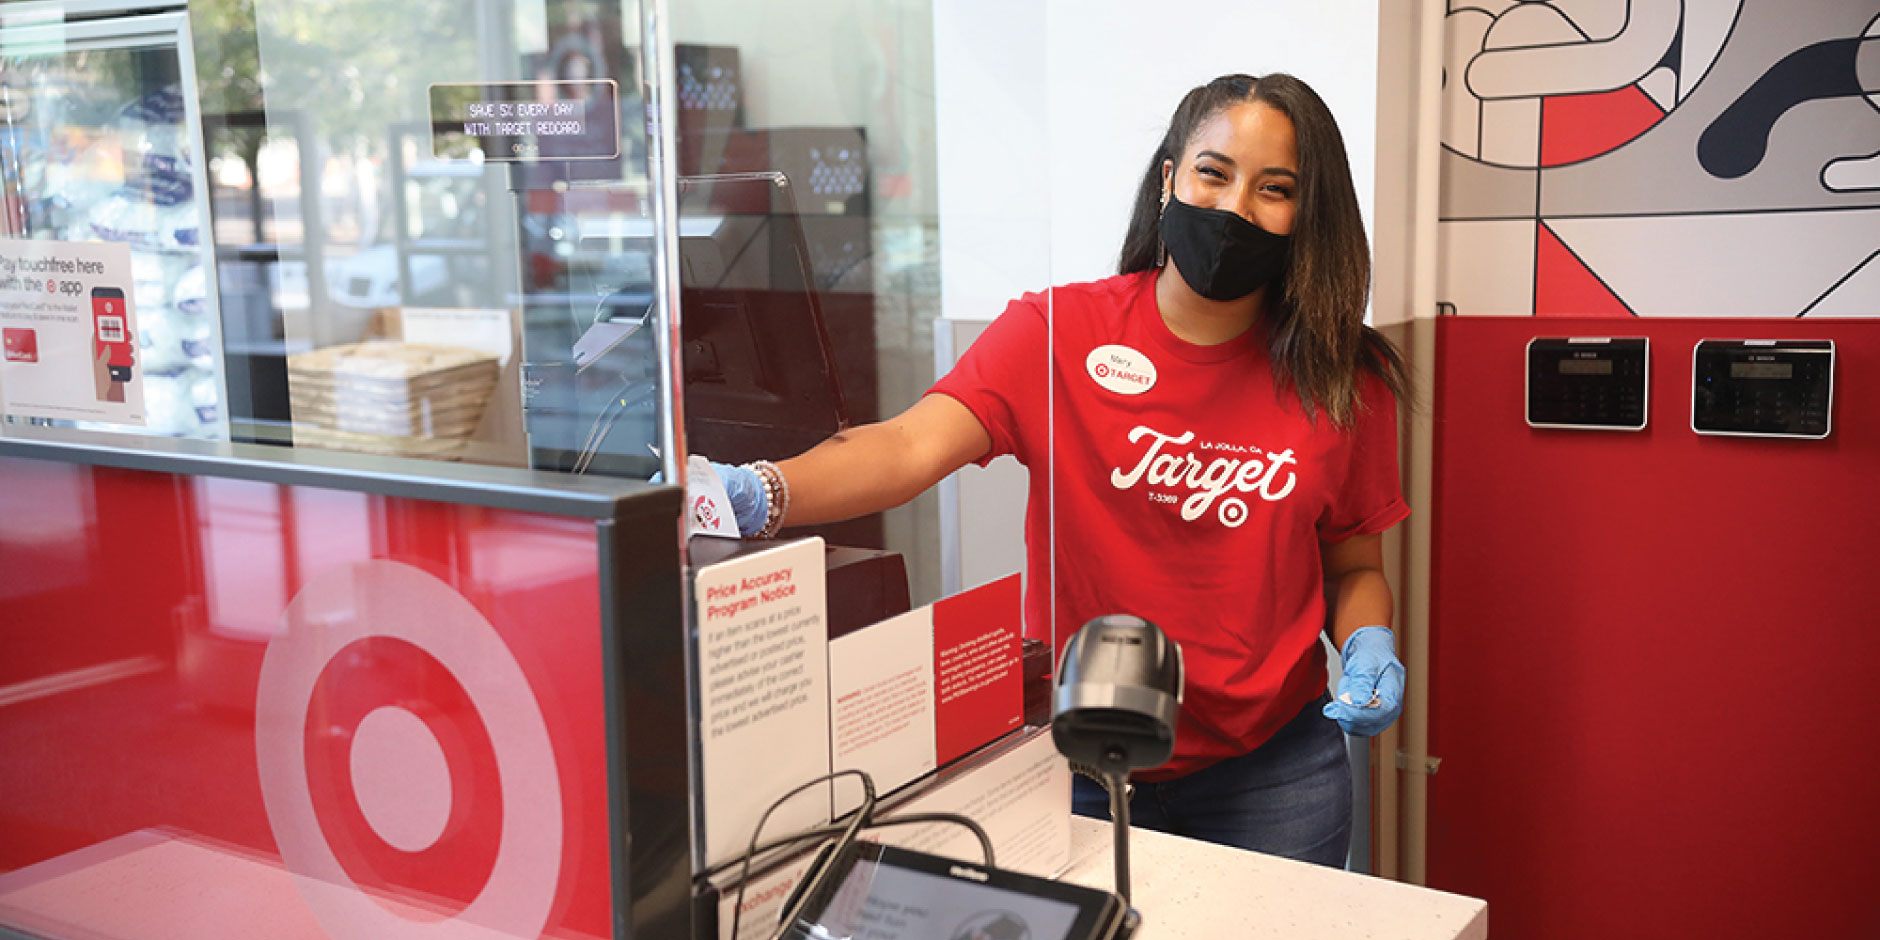 A team member in mask, gloves and red T-shirt smiles at a guest services counter in a Target store